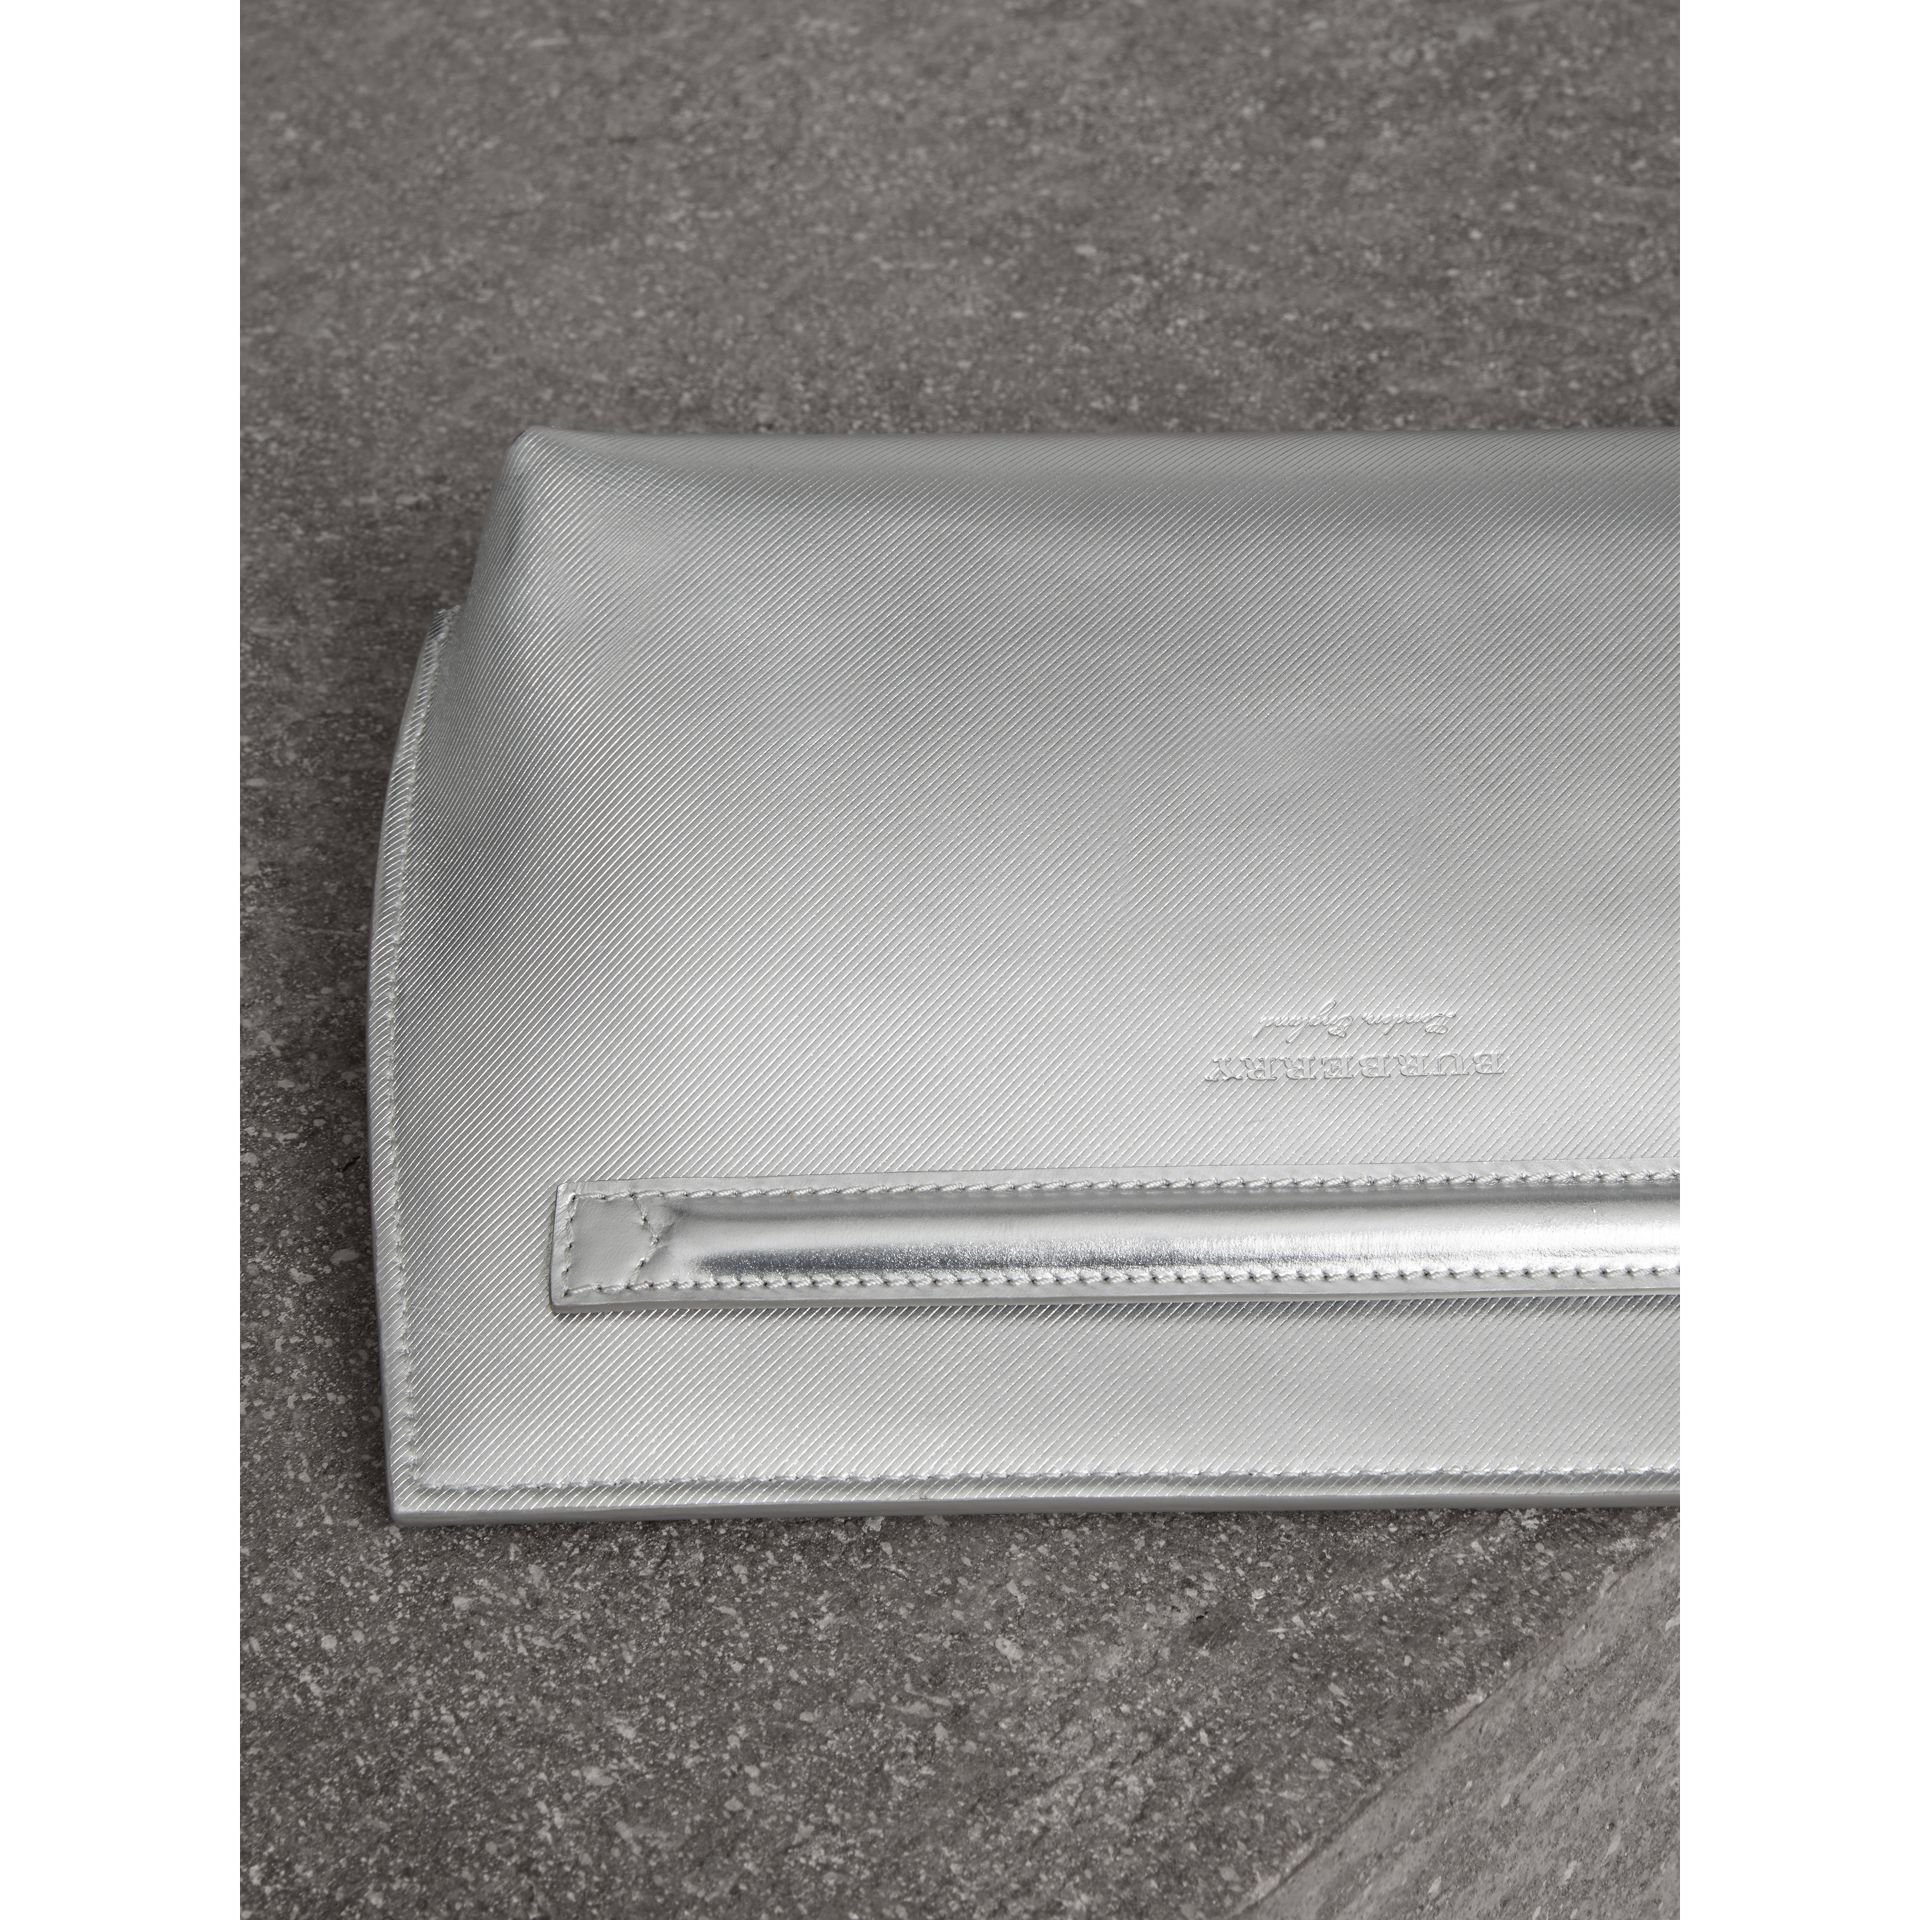 Metallic Trench Leather Pouch in Silver - Women | Burberry - gallery image 3